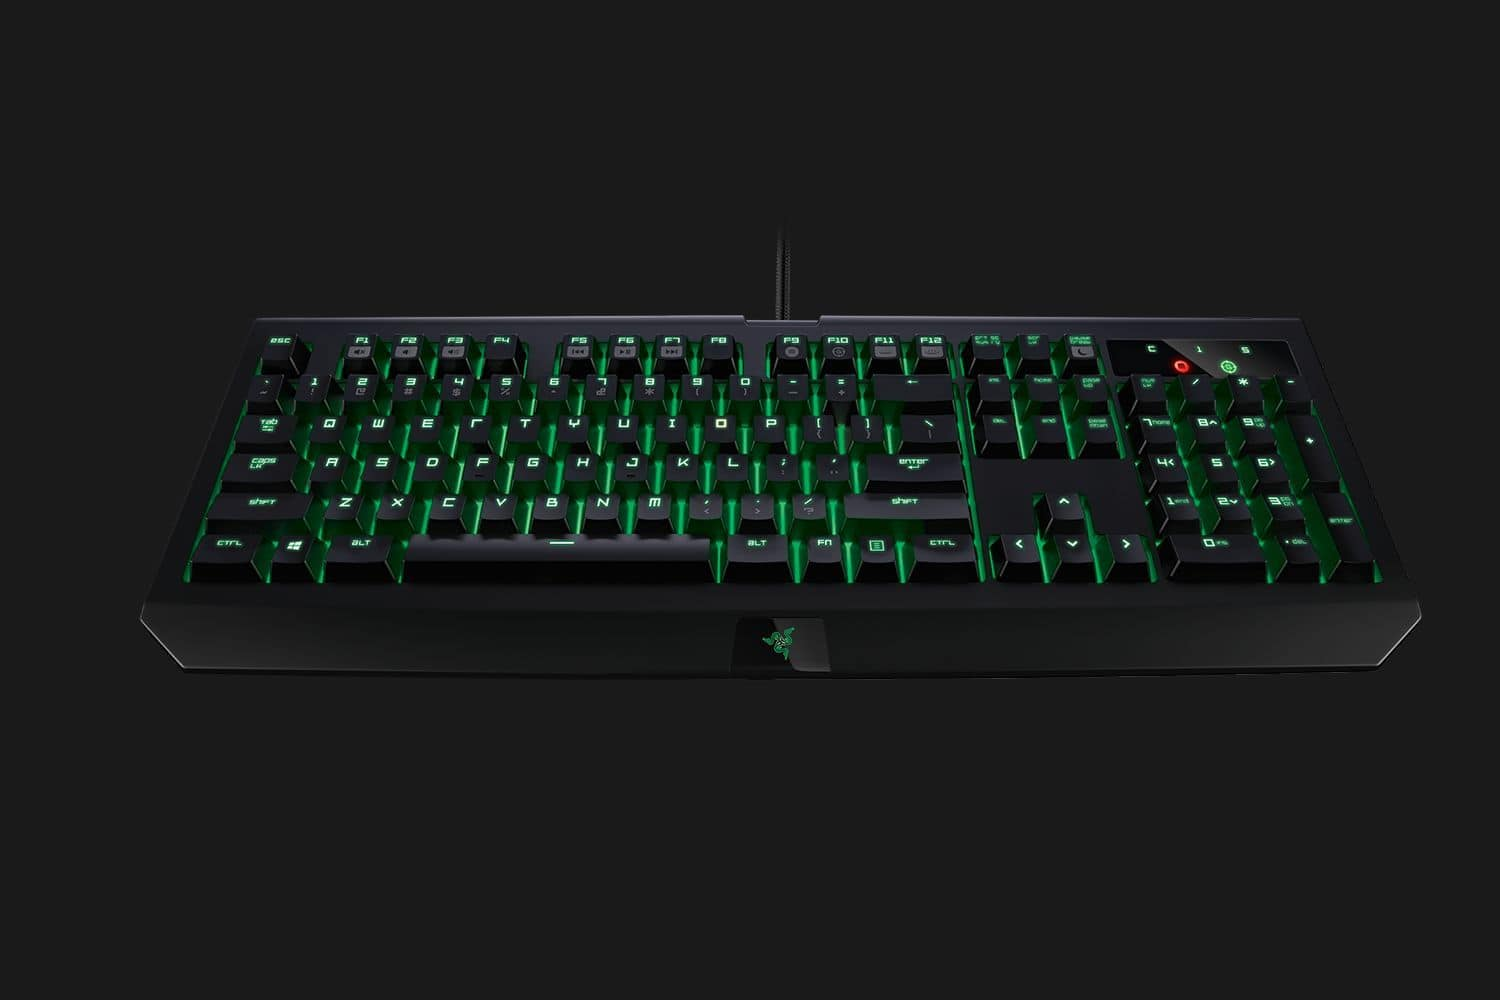 Up to 50% off Select Razer Gaming Keyboards - Razer BlackWidow Ultimate Stealth 2016 - $54.99 w/ Free Shipping